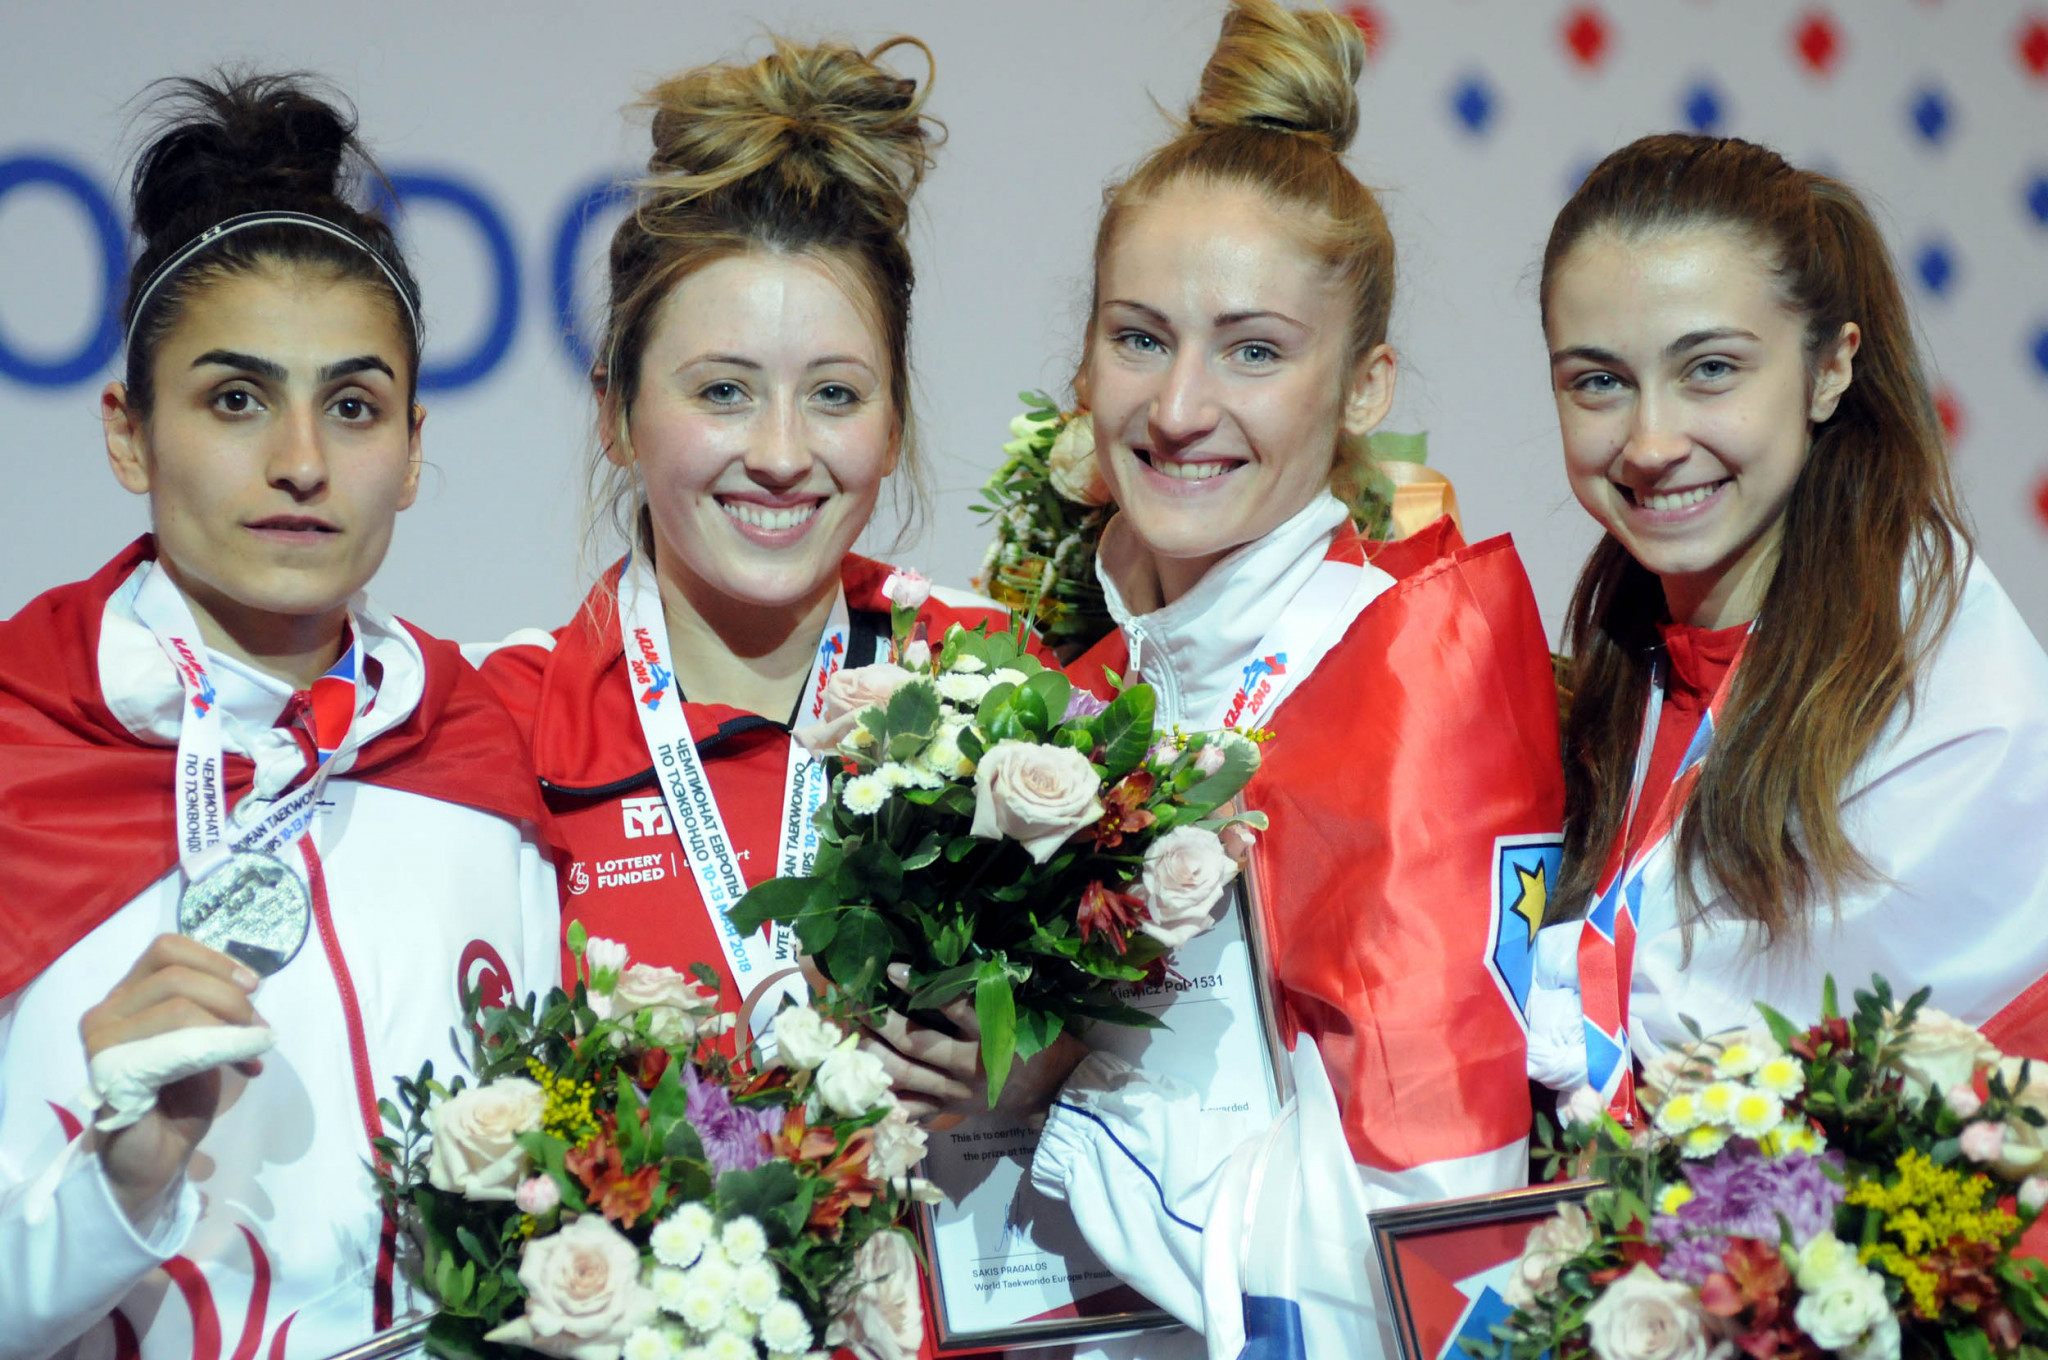 Double Olympic champion Jones successfully defends title at European Taekwondo Championships